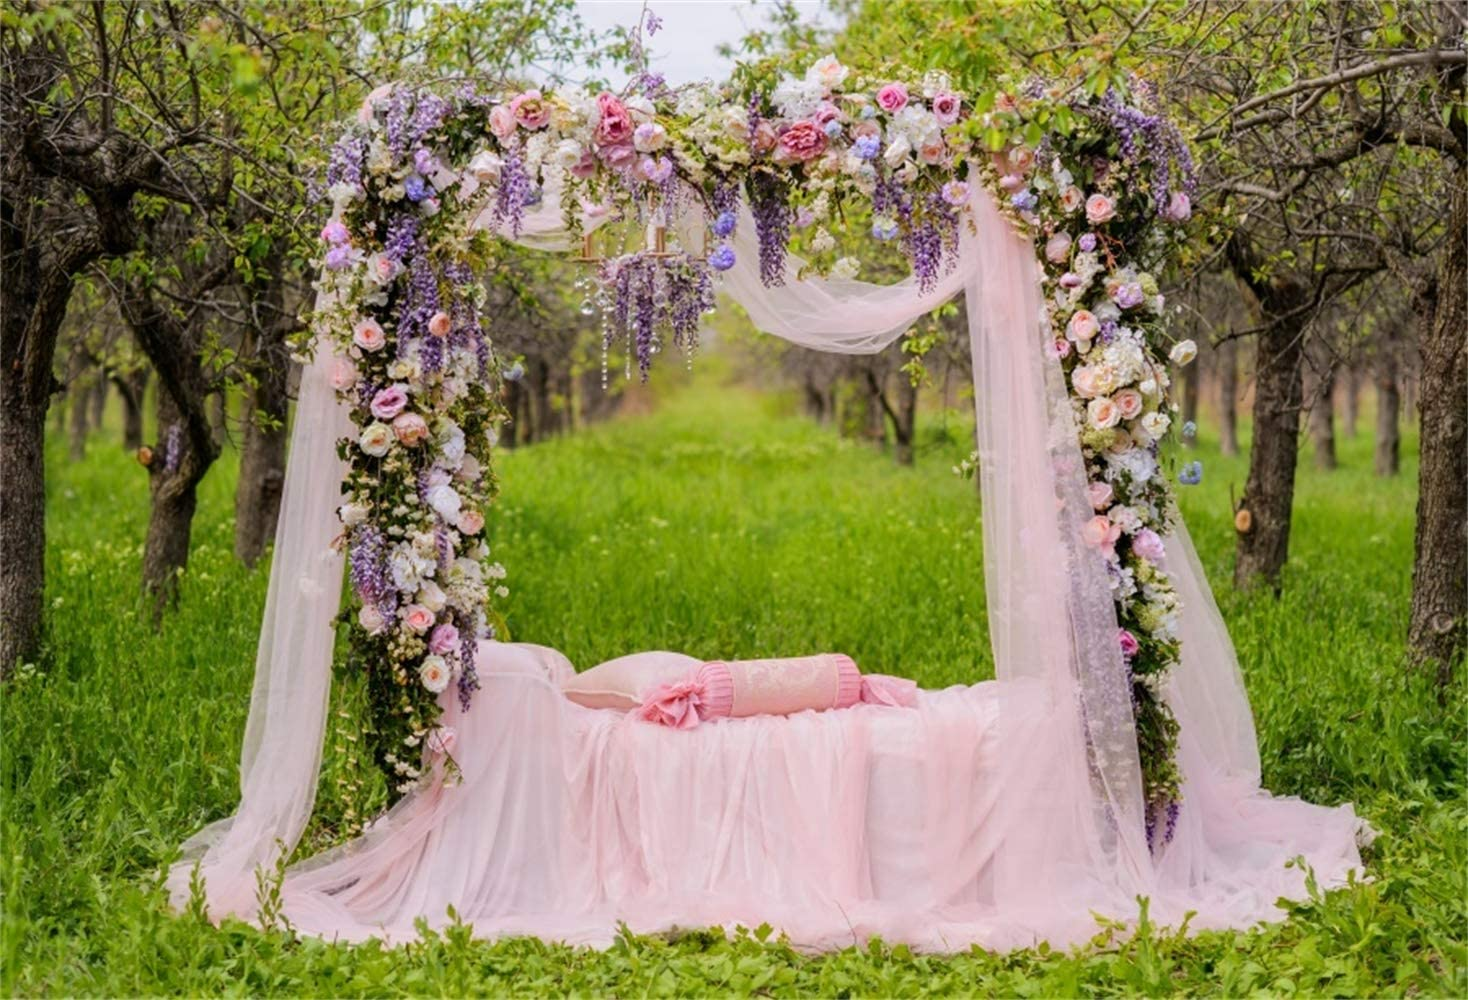 9x6ft Beautiful Flower Decorated Romantic Wedding Bed Background Spring Orchard Polyester Photography Backdrops Pink Candy Shape Pillow Gauze Newlywed Portraits Shoot Wedding Photo Studio